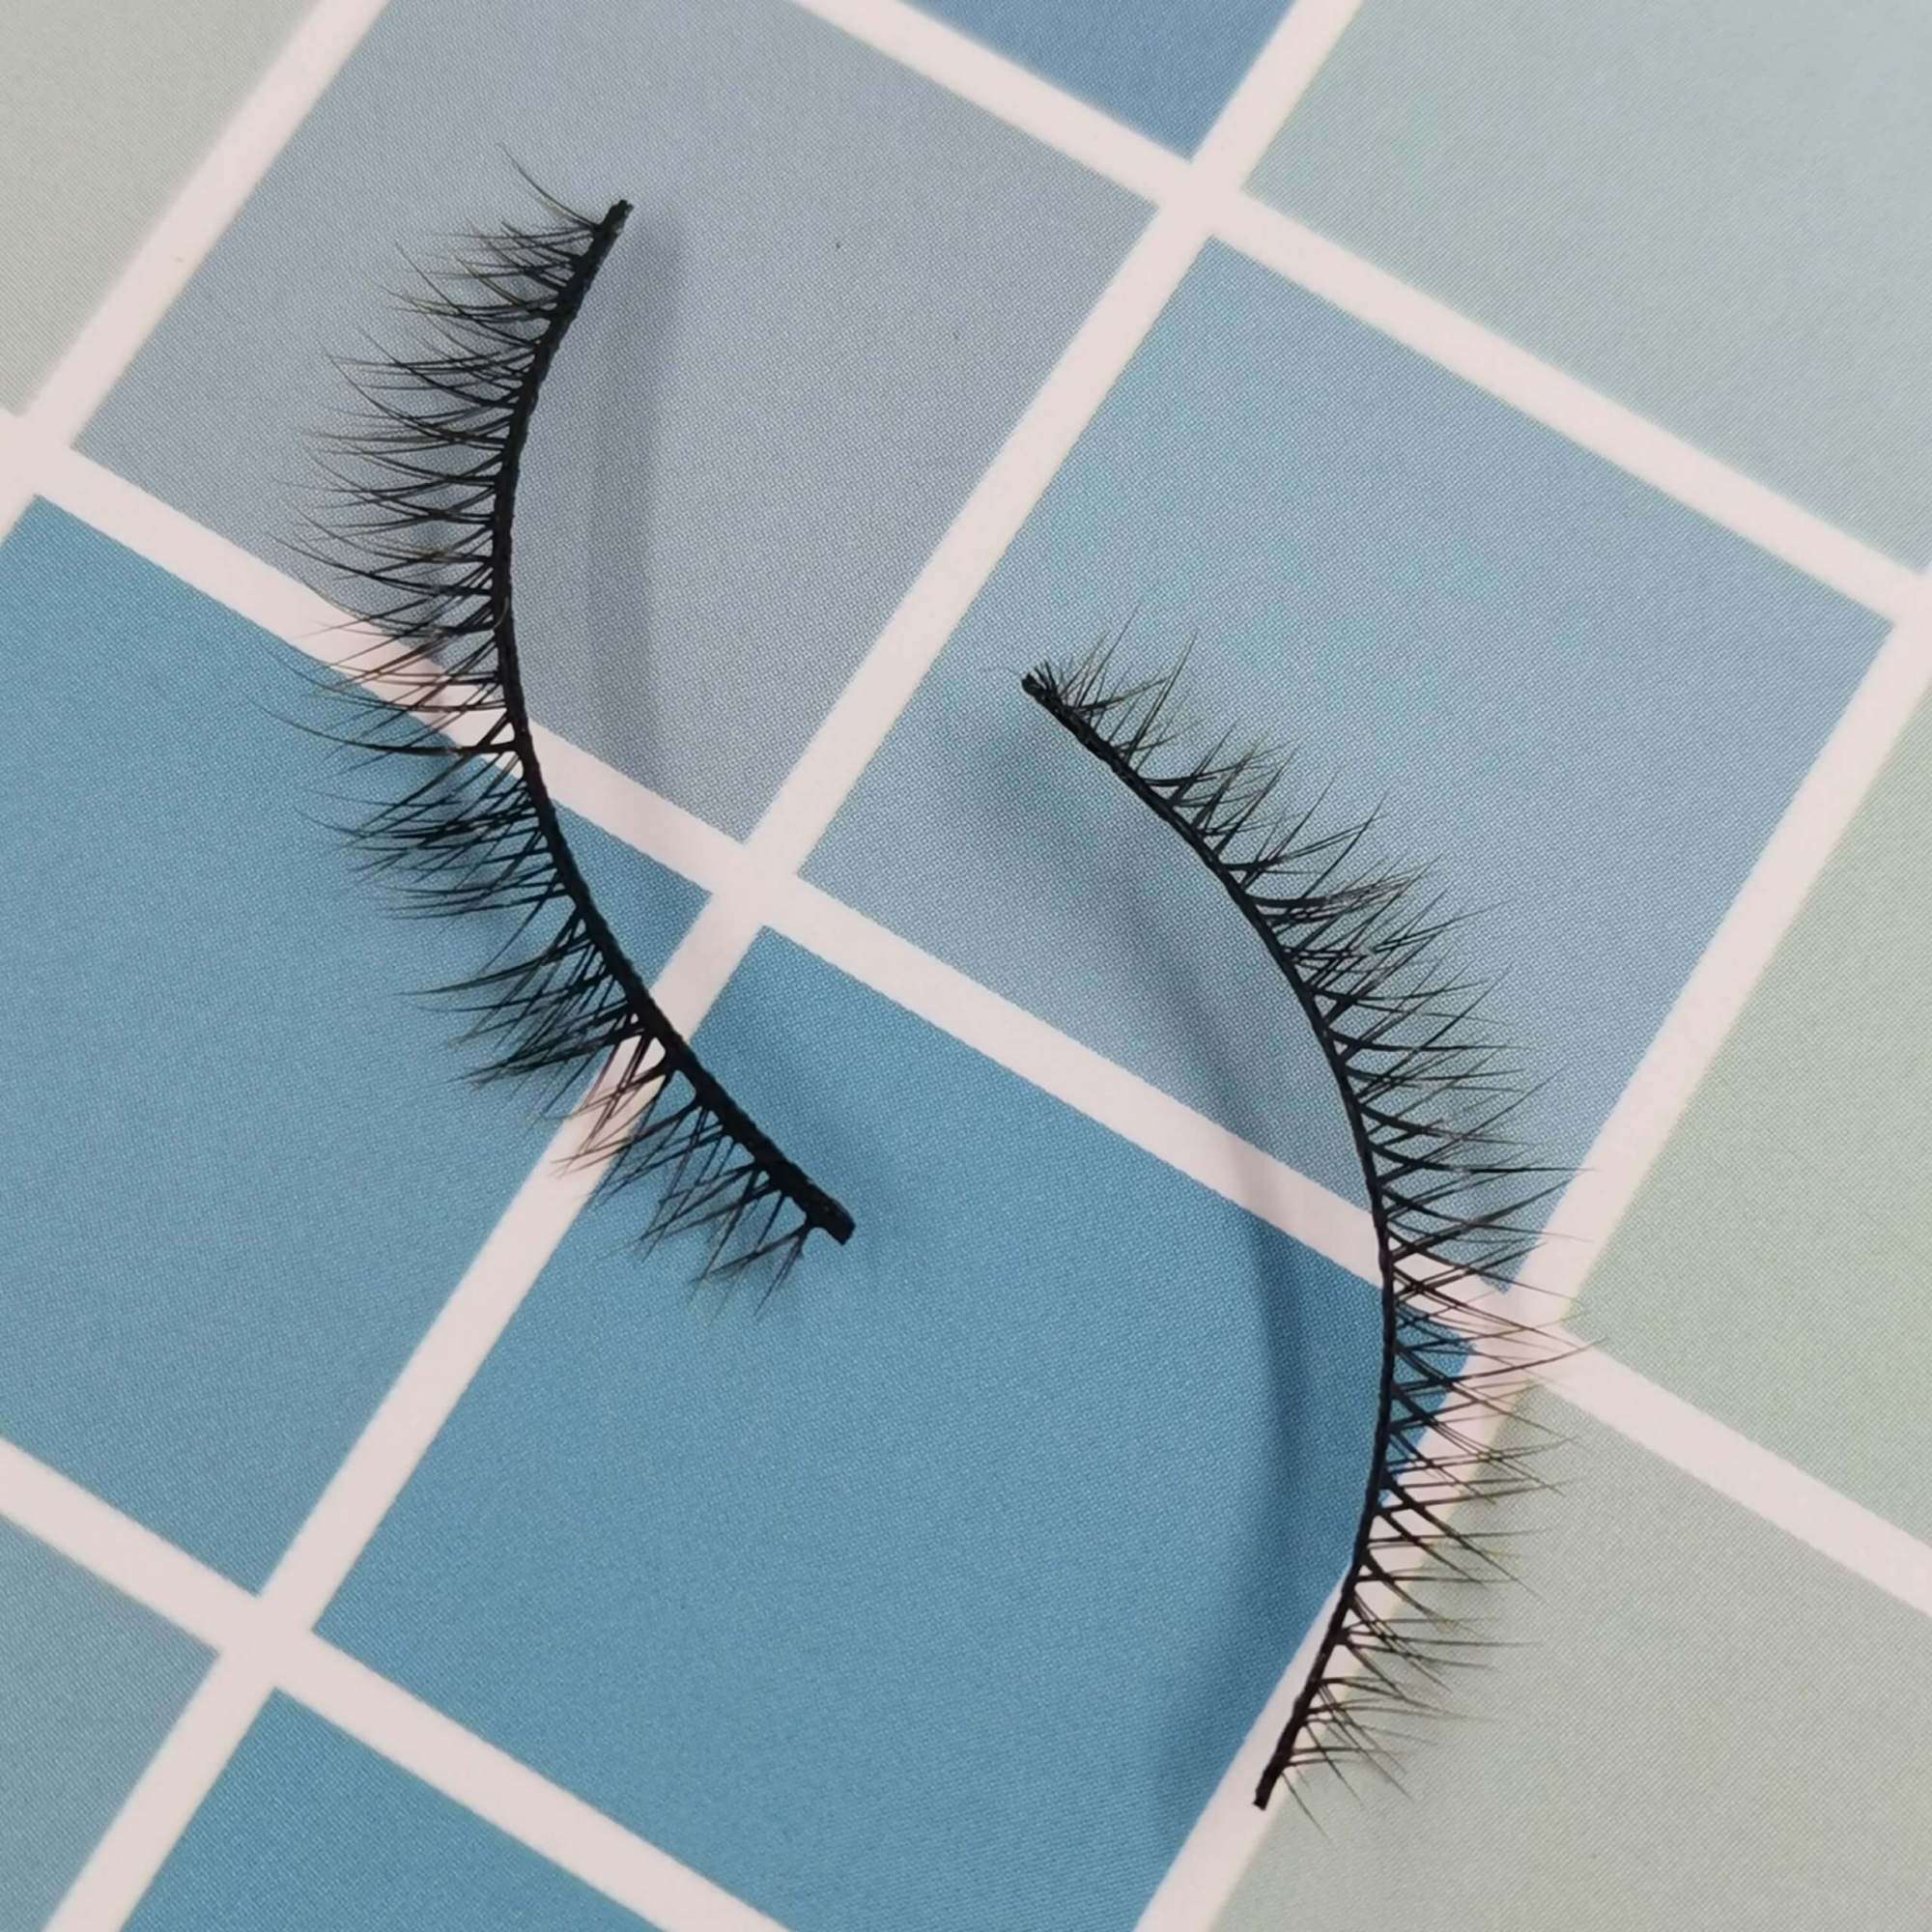 A pair of bottom eyelashes for your eye shape and its model is x002. Trust me, ProluxuryLashes brand is the best eyelash supplier